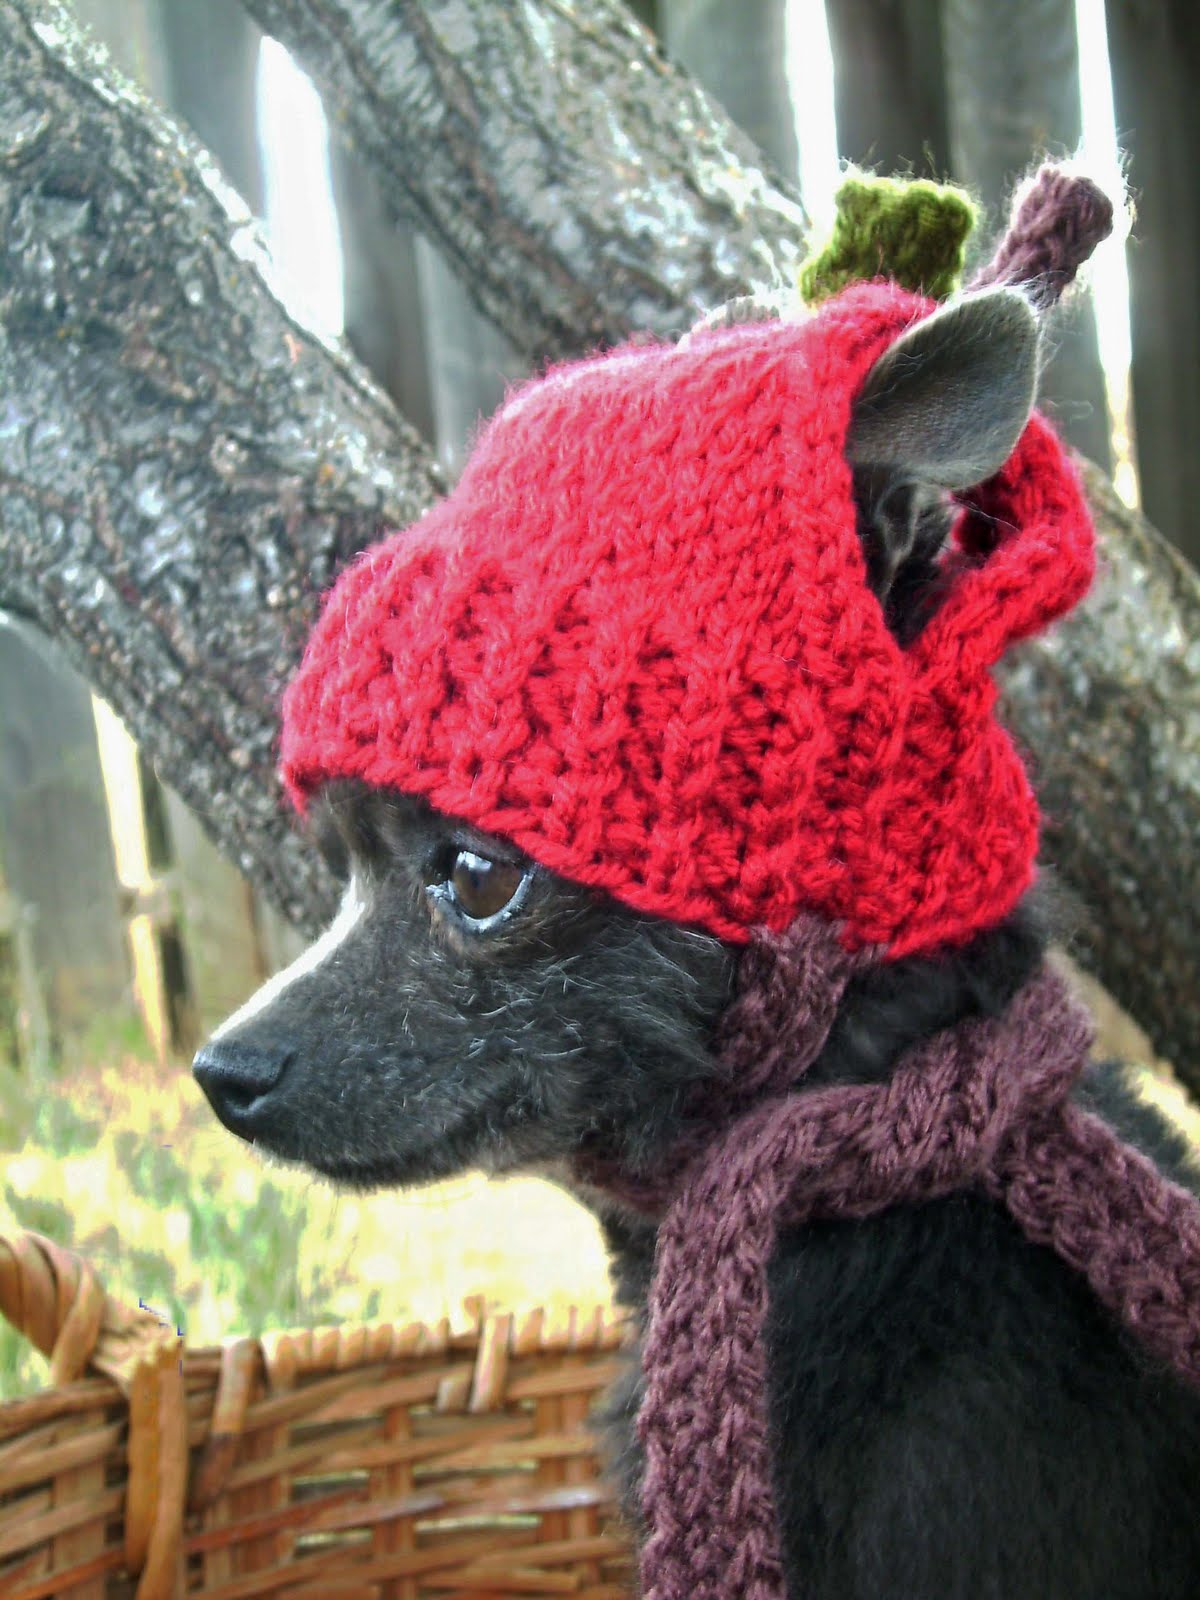 Knitting Patterns For Dogs Hats : Dog Gone it: Anywear hand knits for dogs